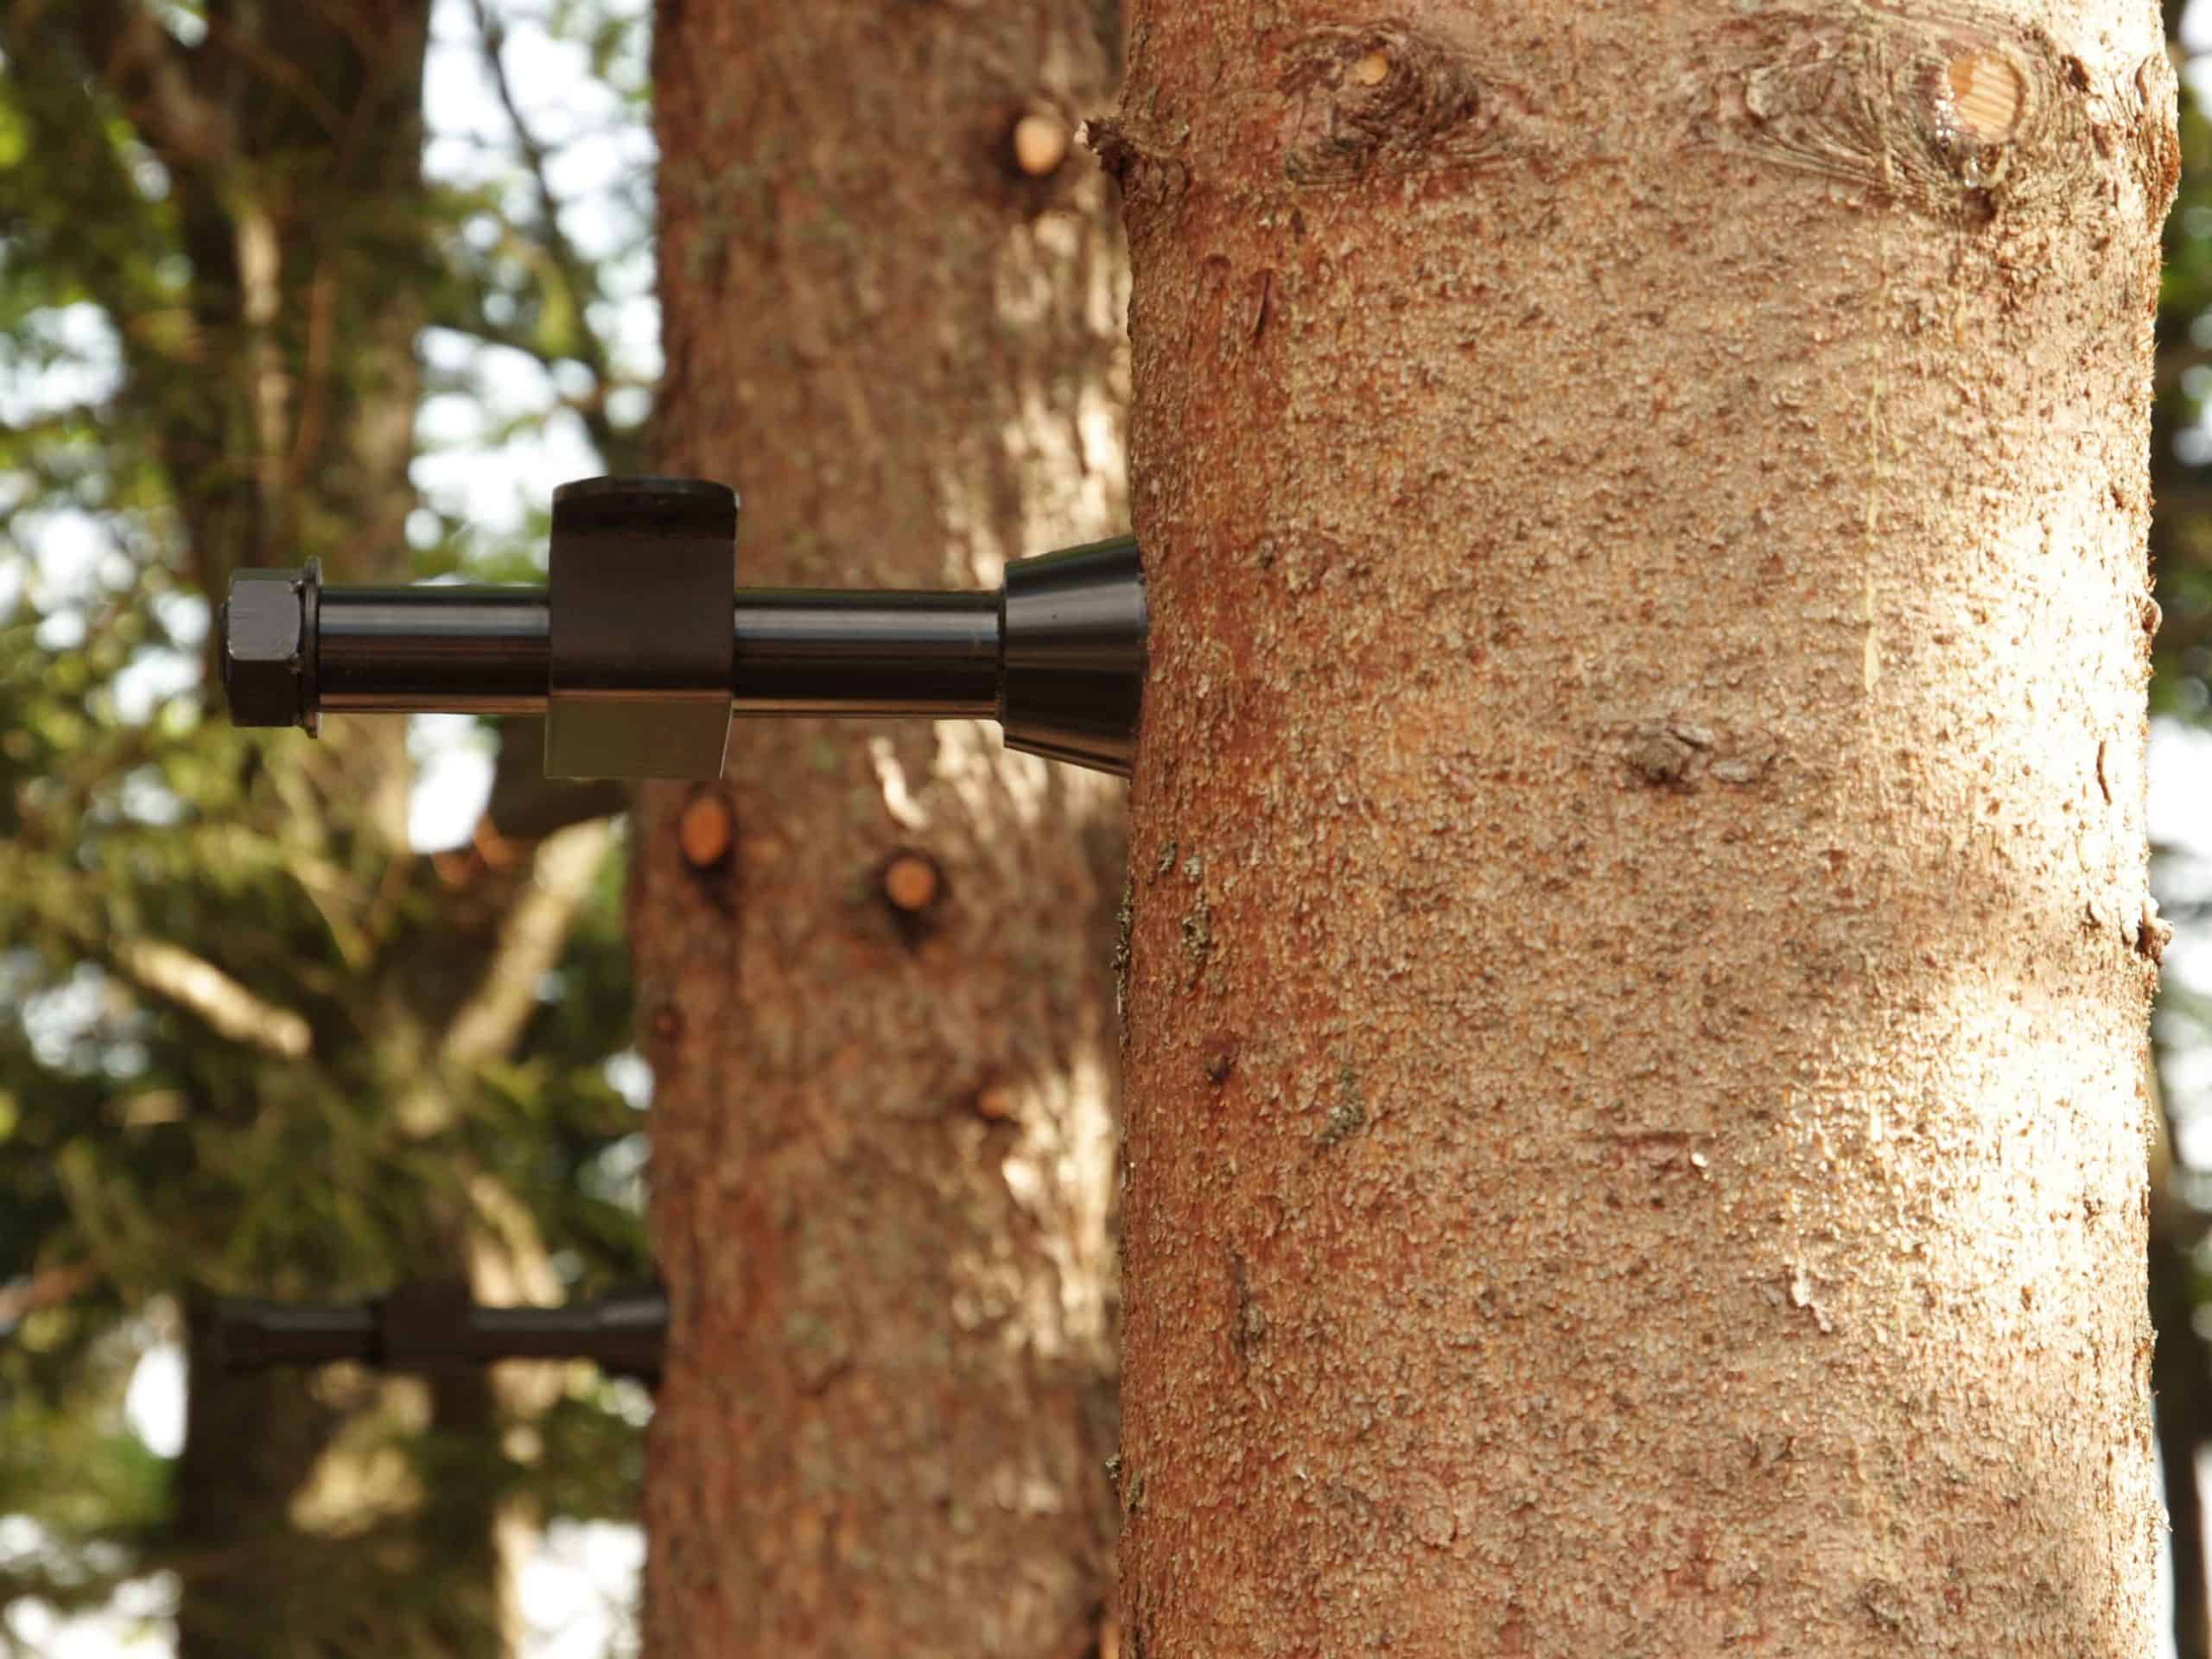 German Treehouse Screw GTS Allstar - professional attachment for mounting platform in living tree